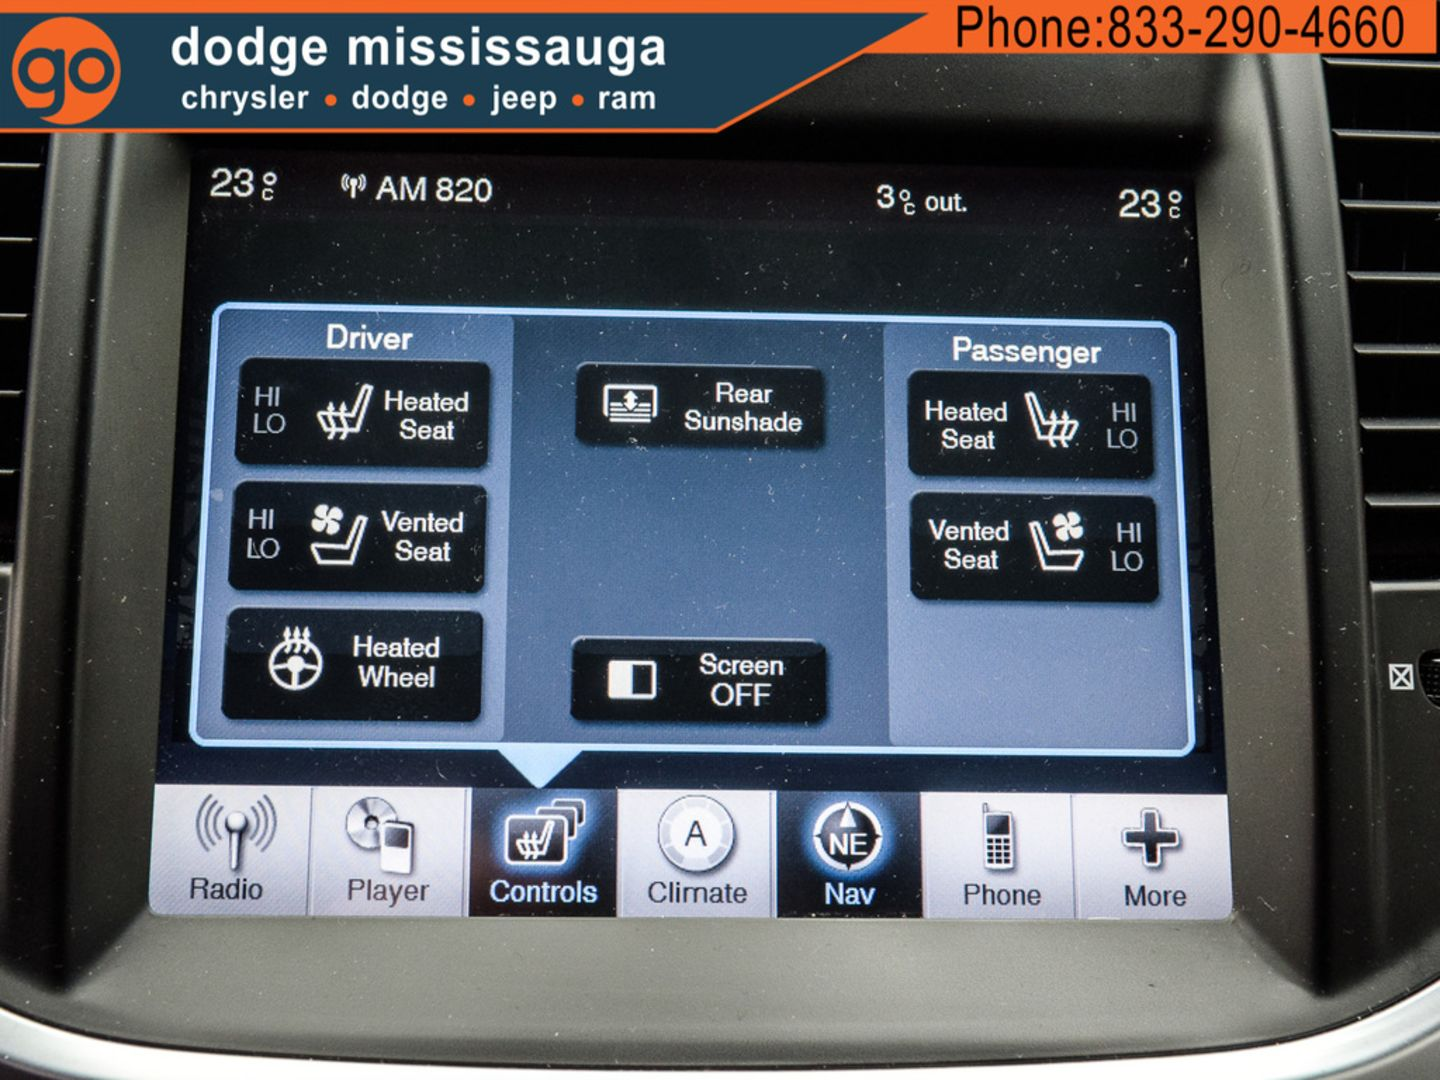 2011 Chrysler 300 Limited for sale in Mississauga, Ontario